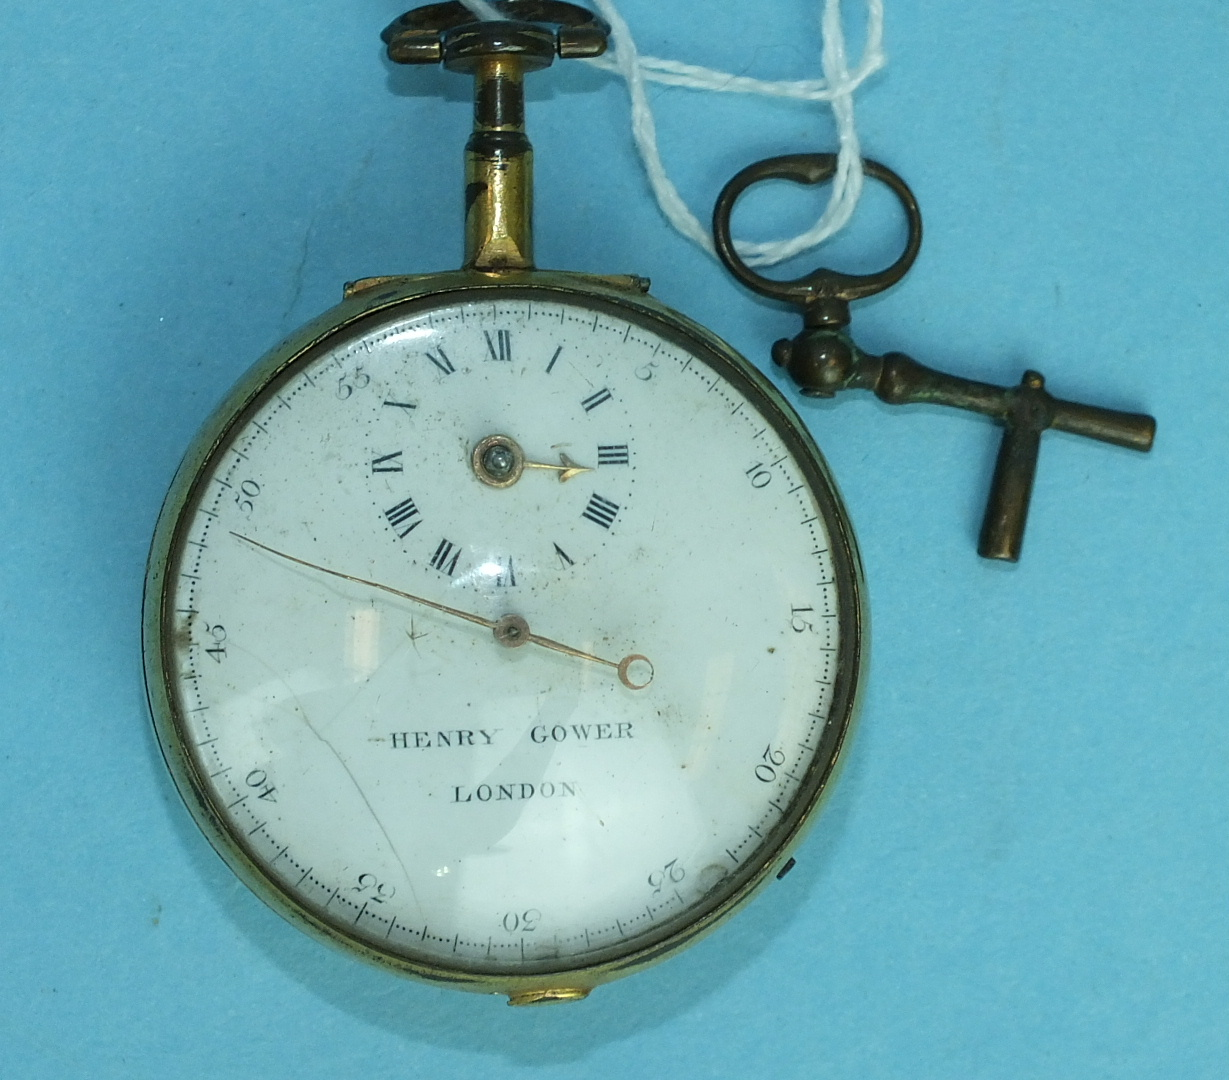 Lot 156 - An 18th century open-face pocket watch by Henry Gower, London, the white enamel dial with subsidiary